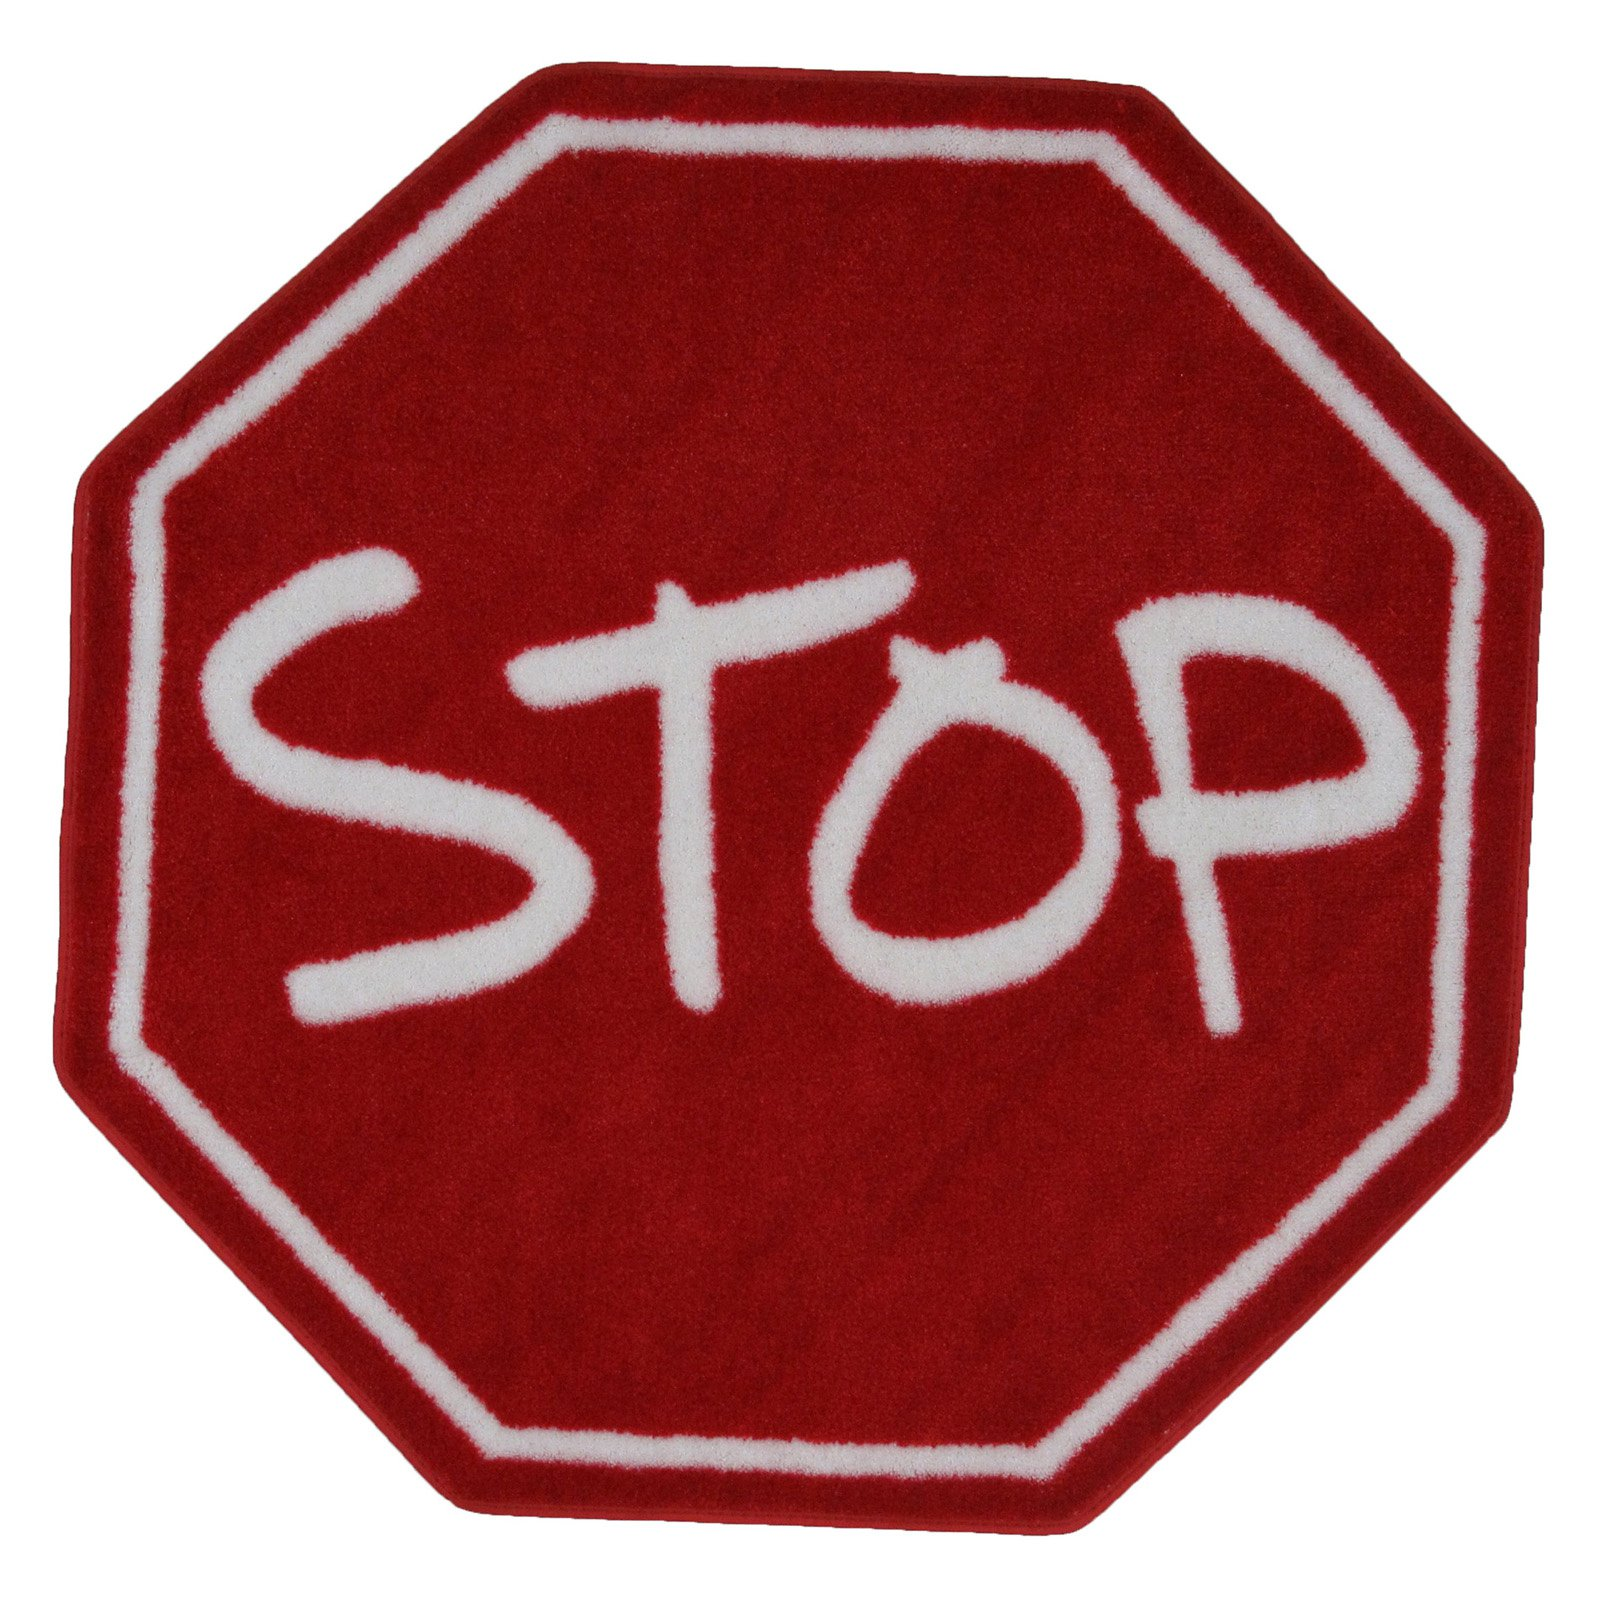 Fun Rugs Fun Time Stop Sign Round Rug, Red/White